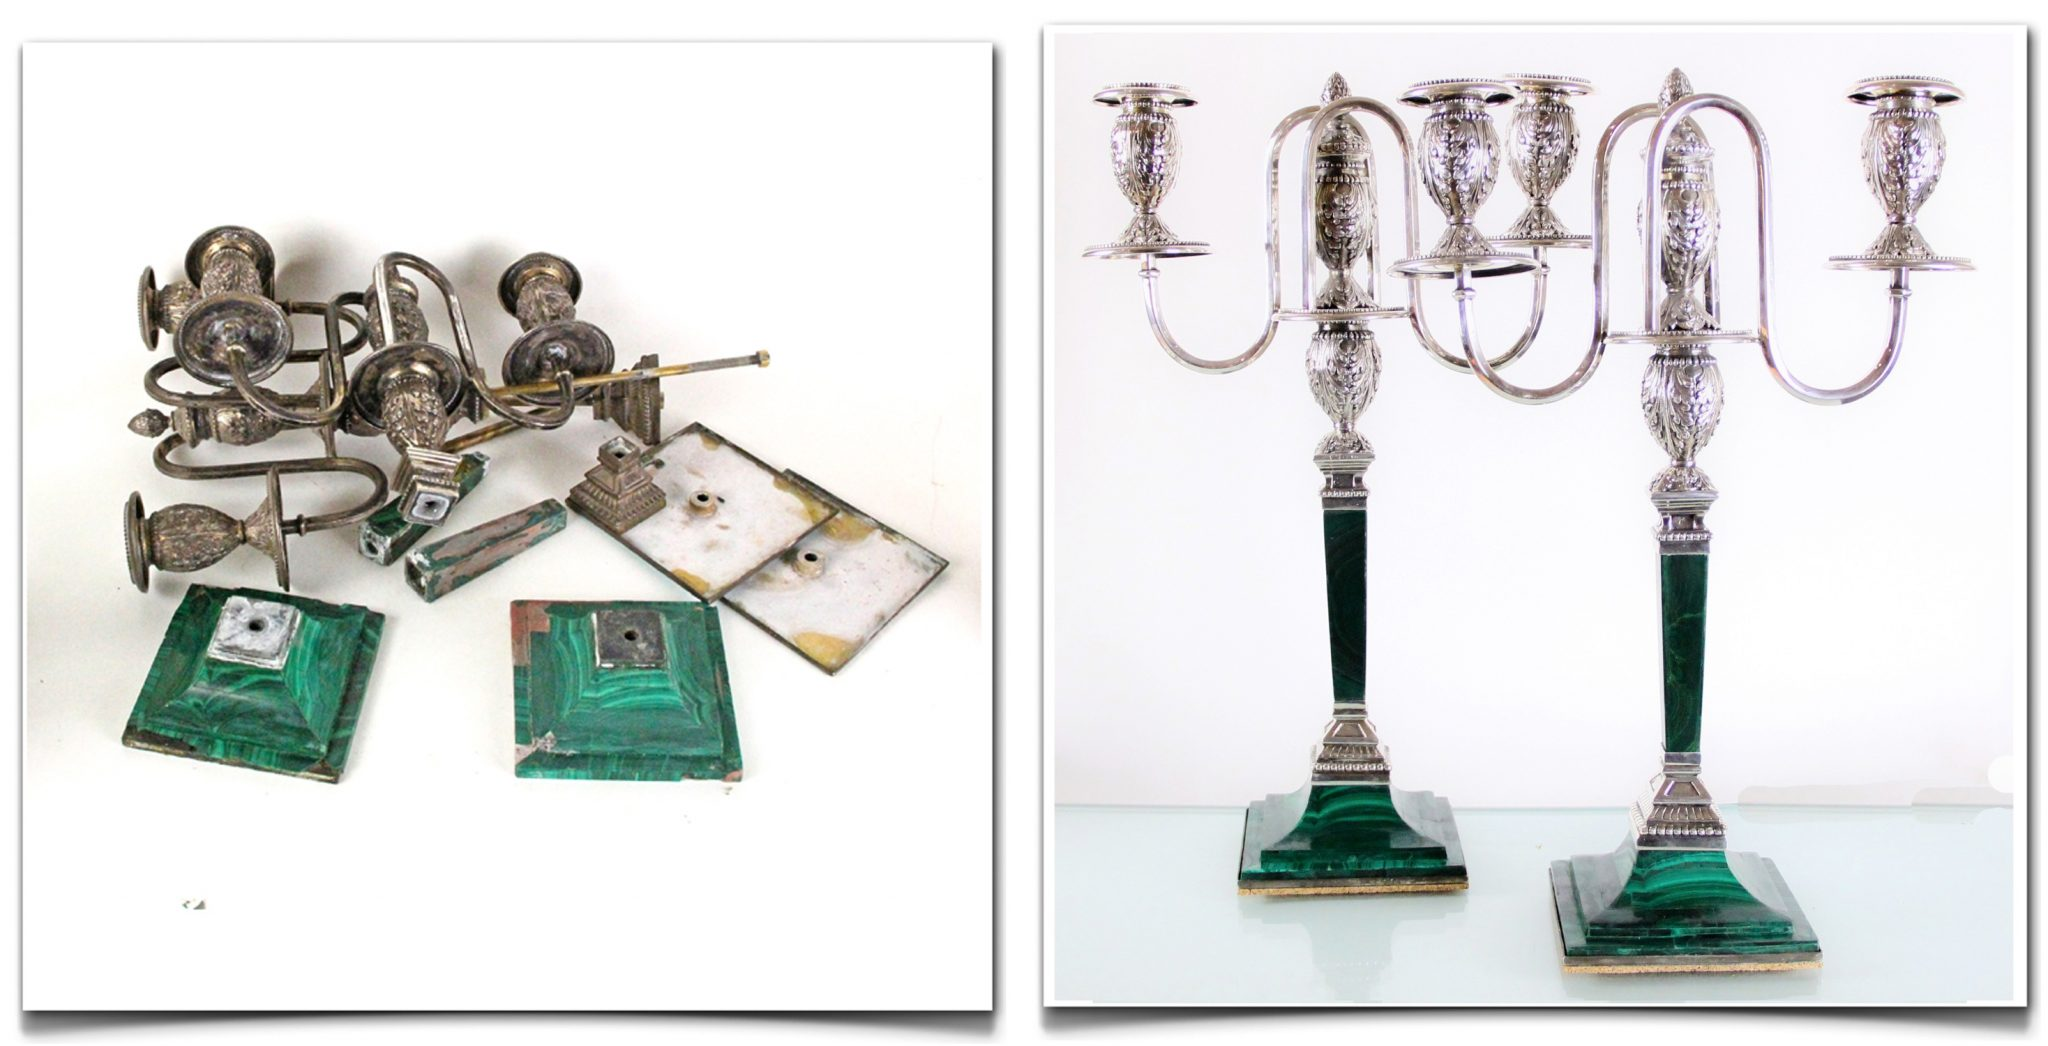 Restoration of Silver and Stone. Antique Candelabras with Russian Silver Marks.